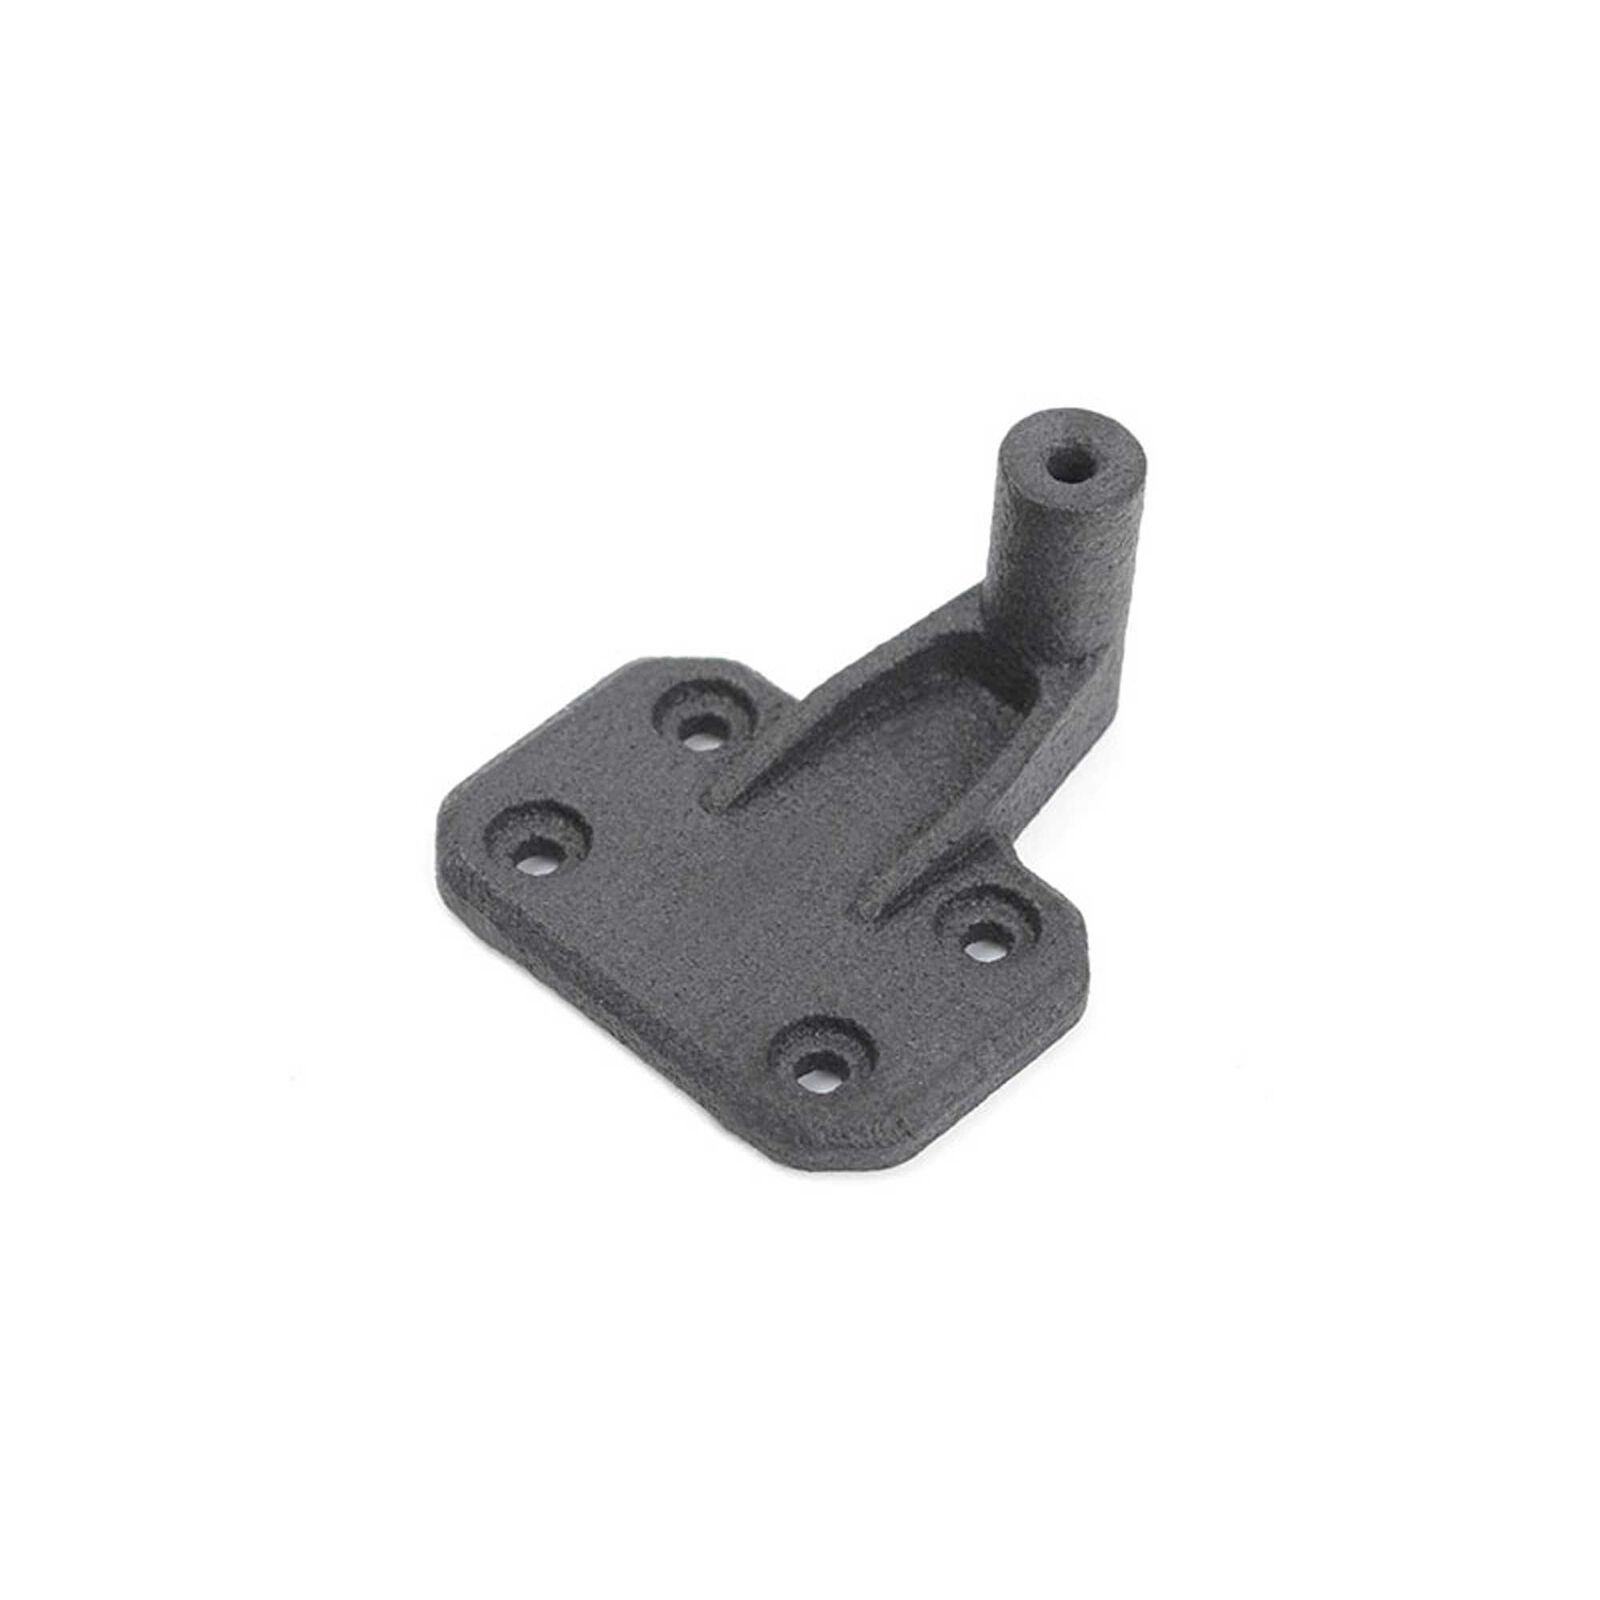 Tire Holder-Axial SCX24 1/24 Jeep Wrangler RTR